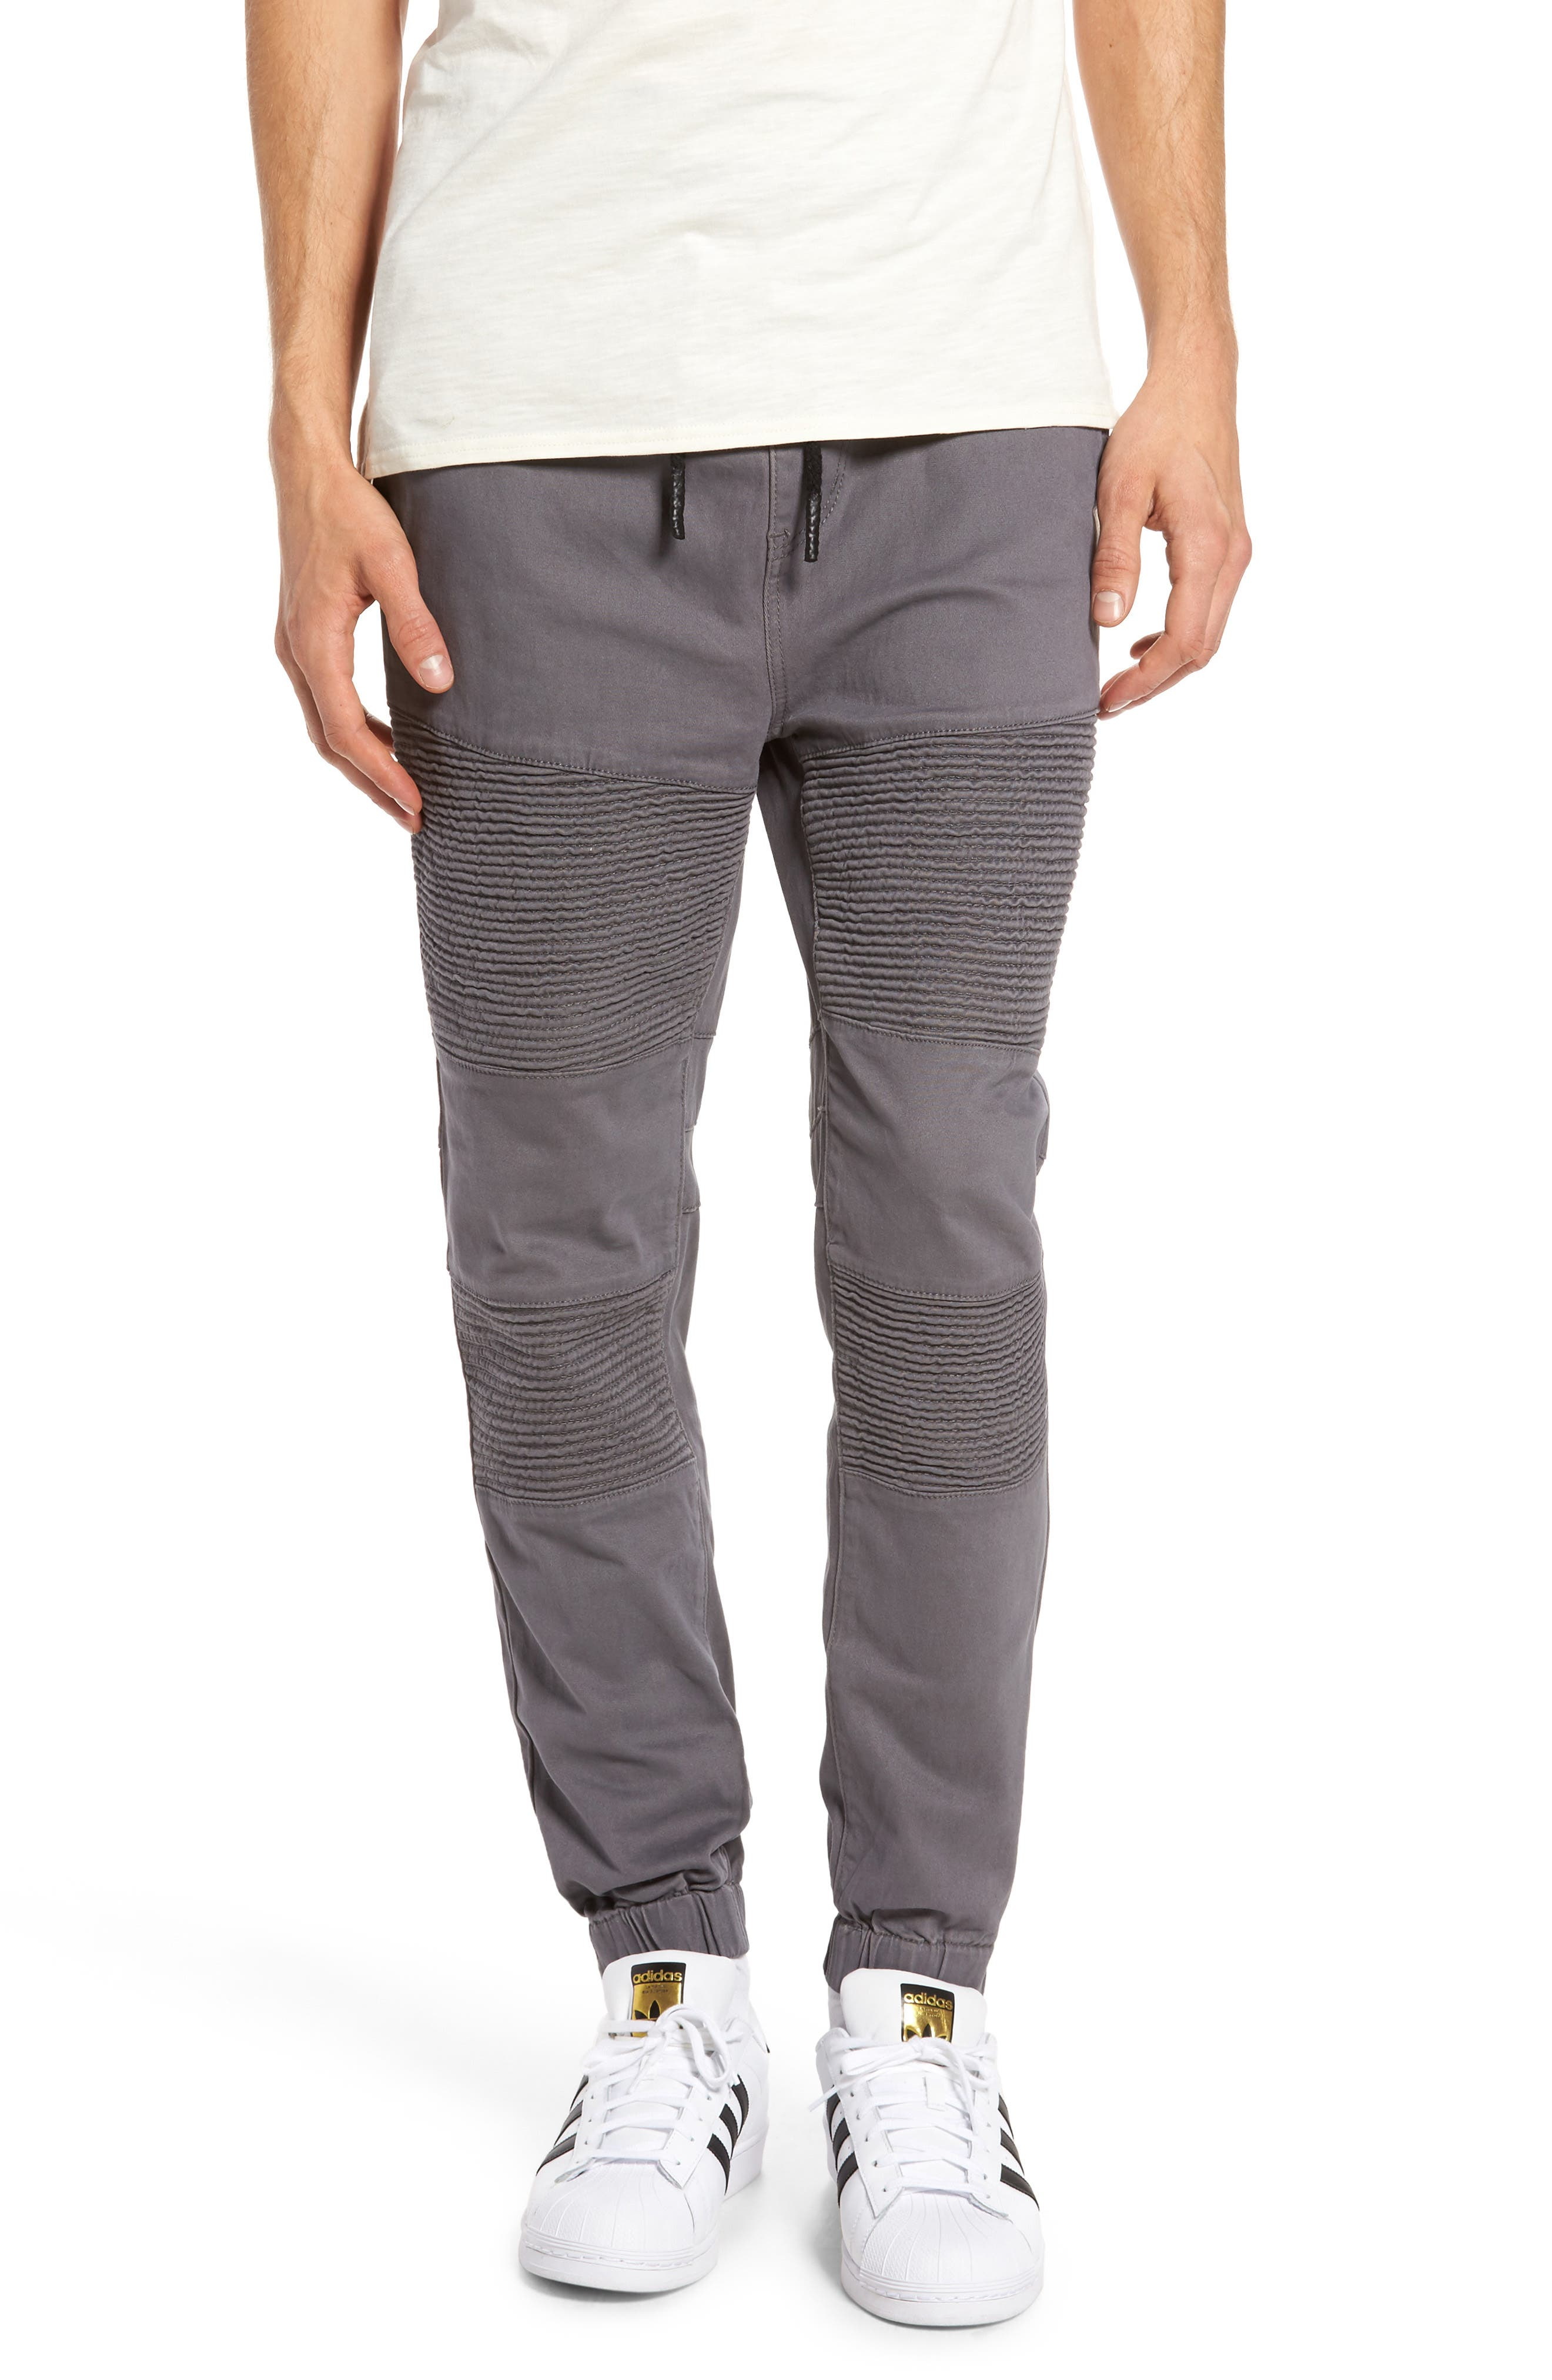 Alternate Image 1 Selected - Lira Clothing Cardinal Jogger Pants